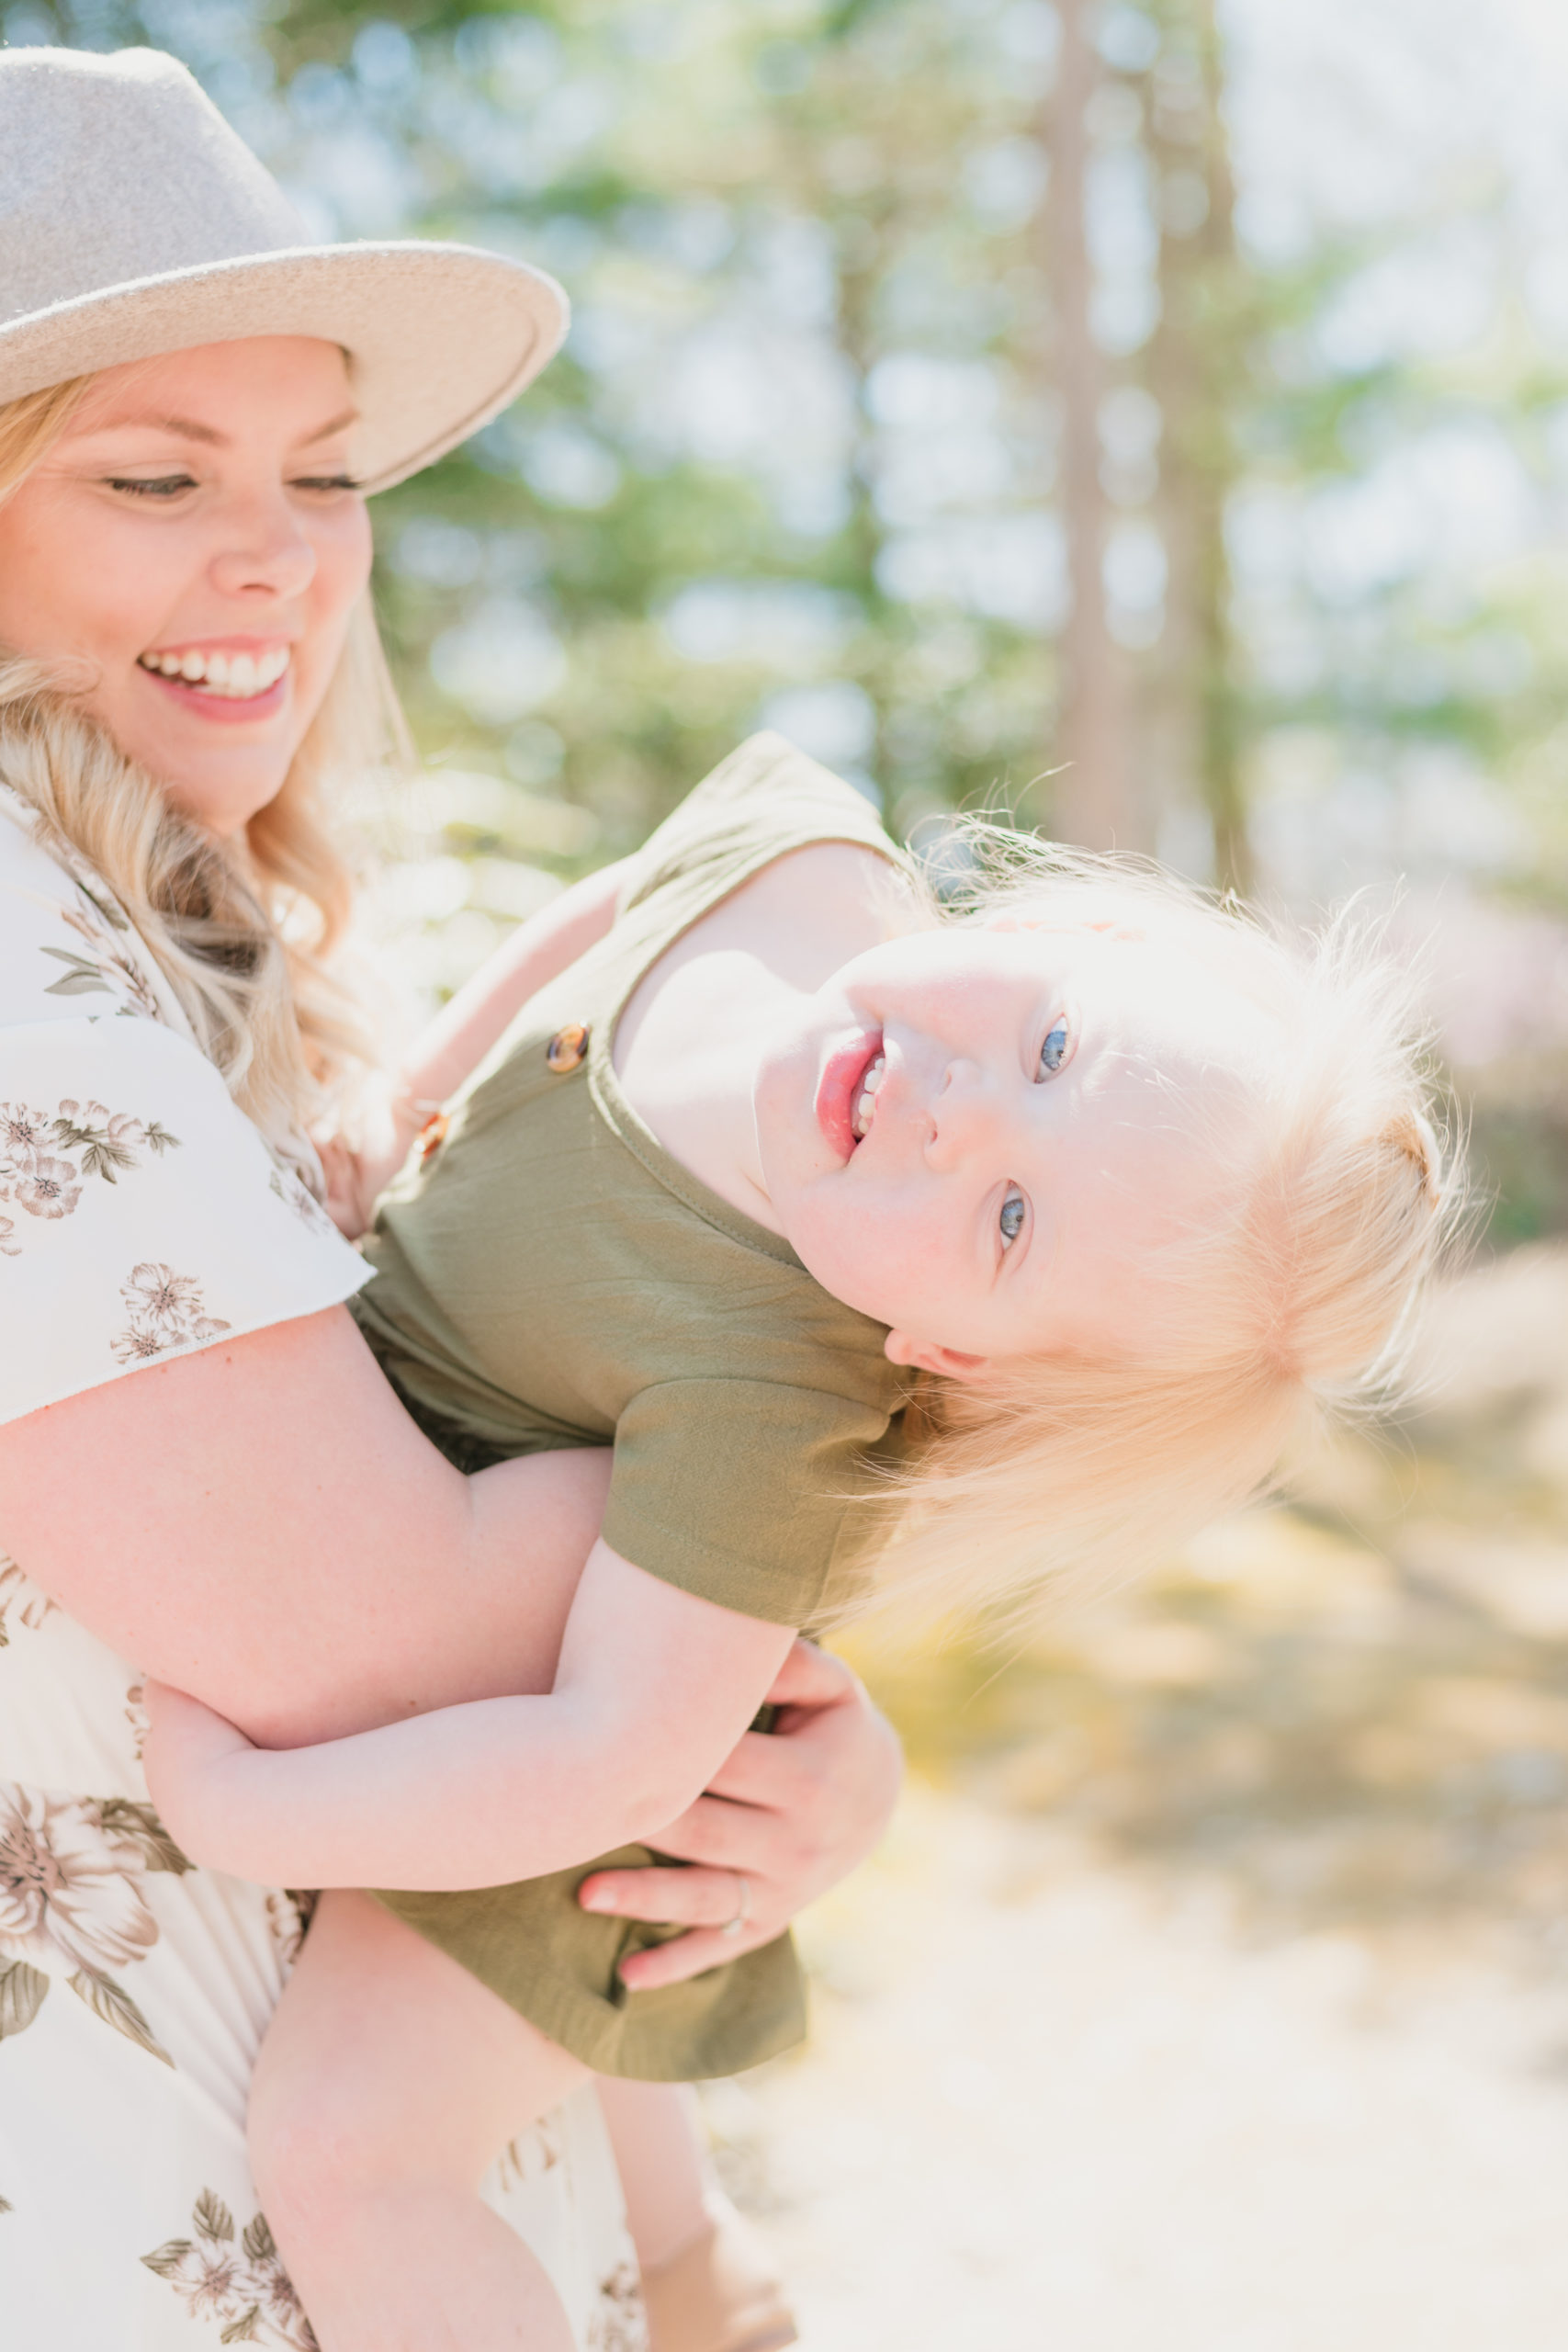 Mother holding young daughter. Daughter is leaning towards the camera and mother is smiling. The two are having fun twirling during mommy and me session at Spohr Gardens